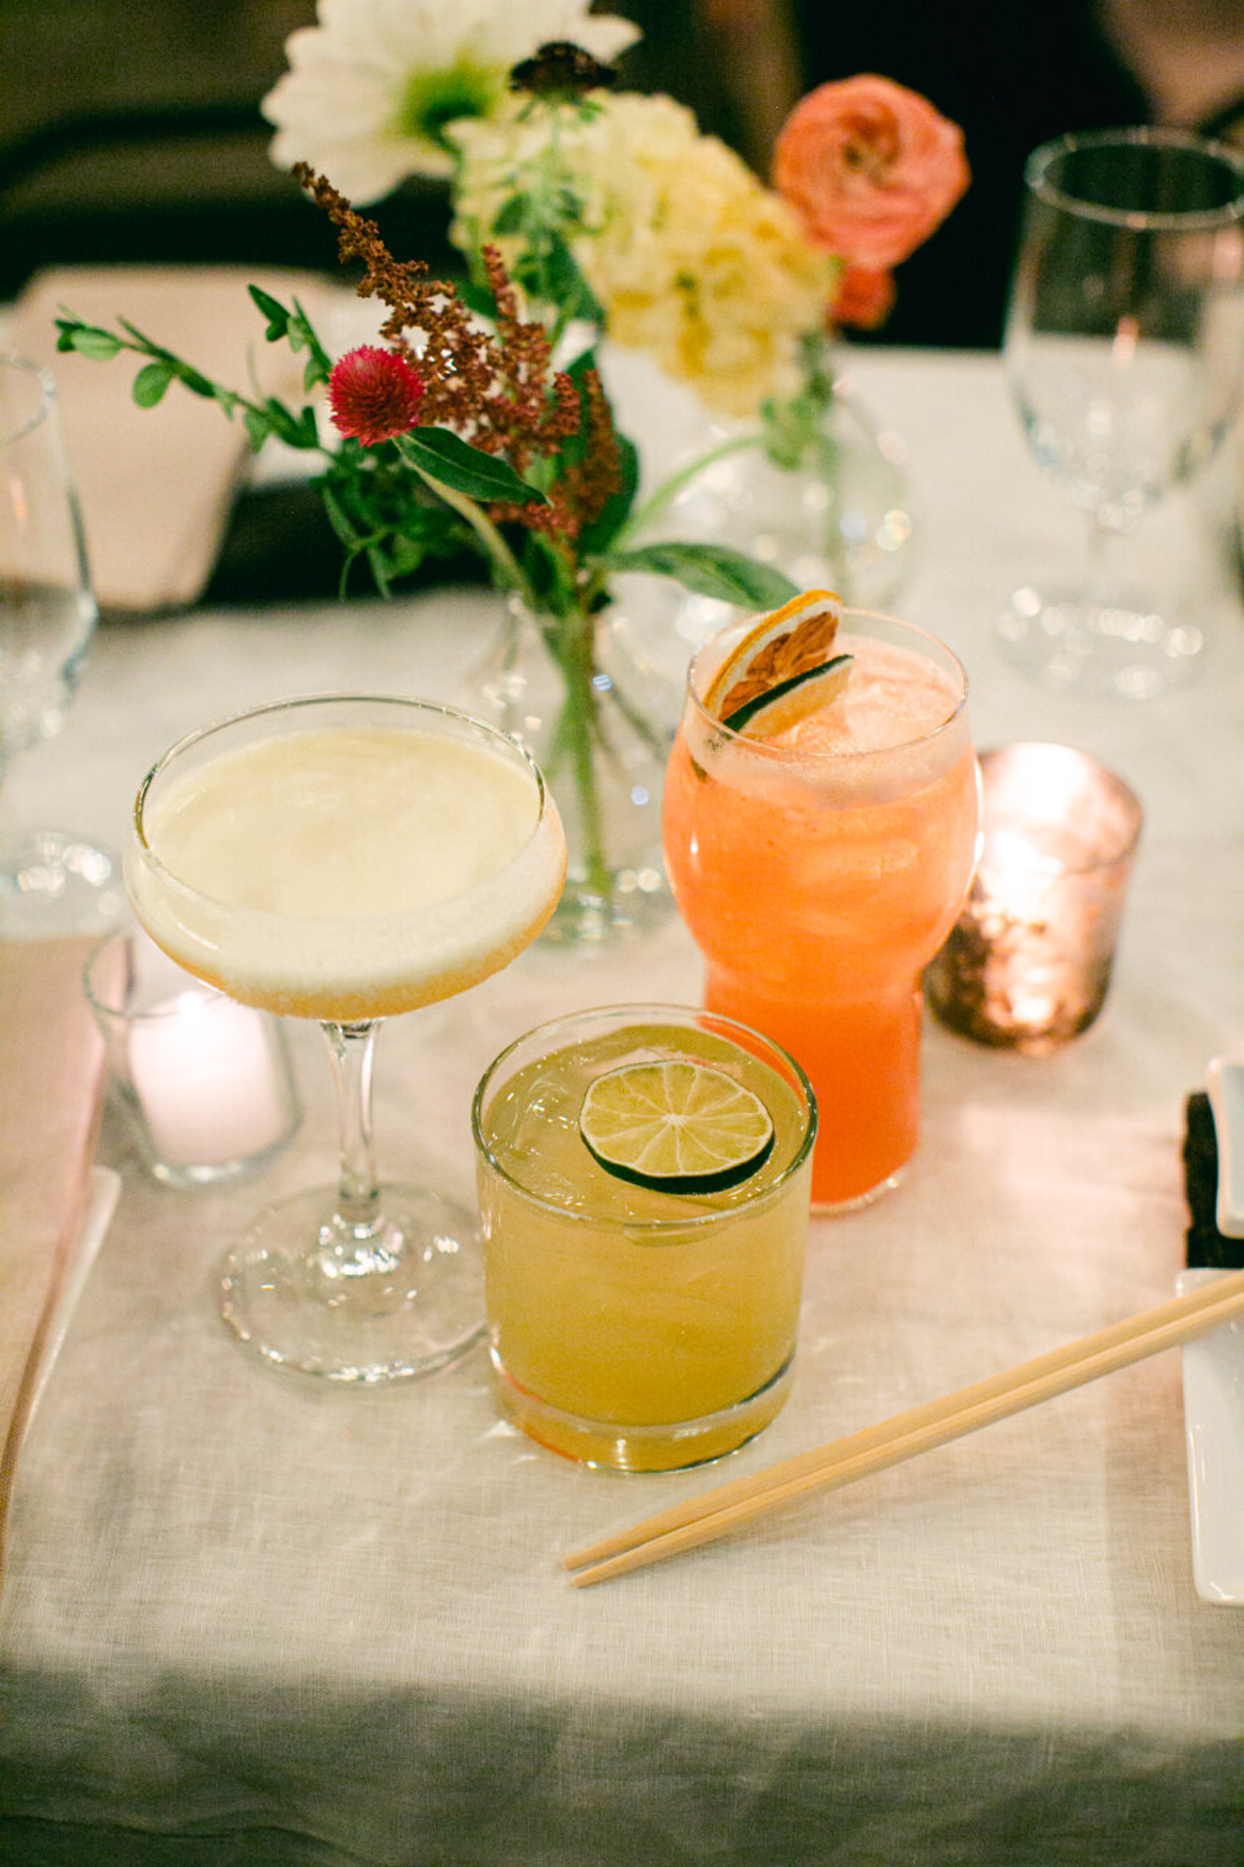 signature cocktails with limes and lemons